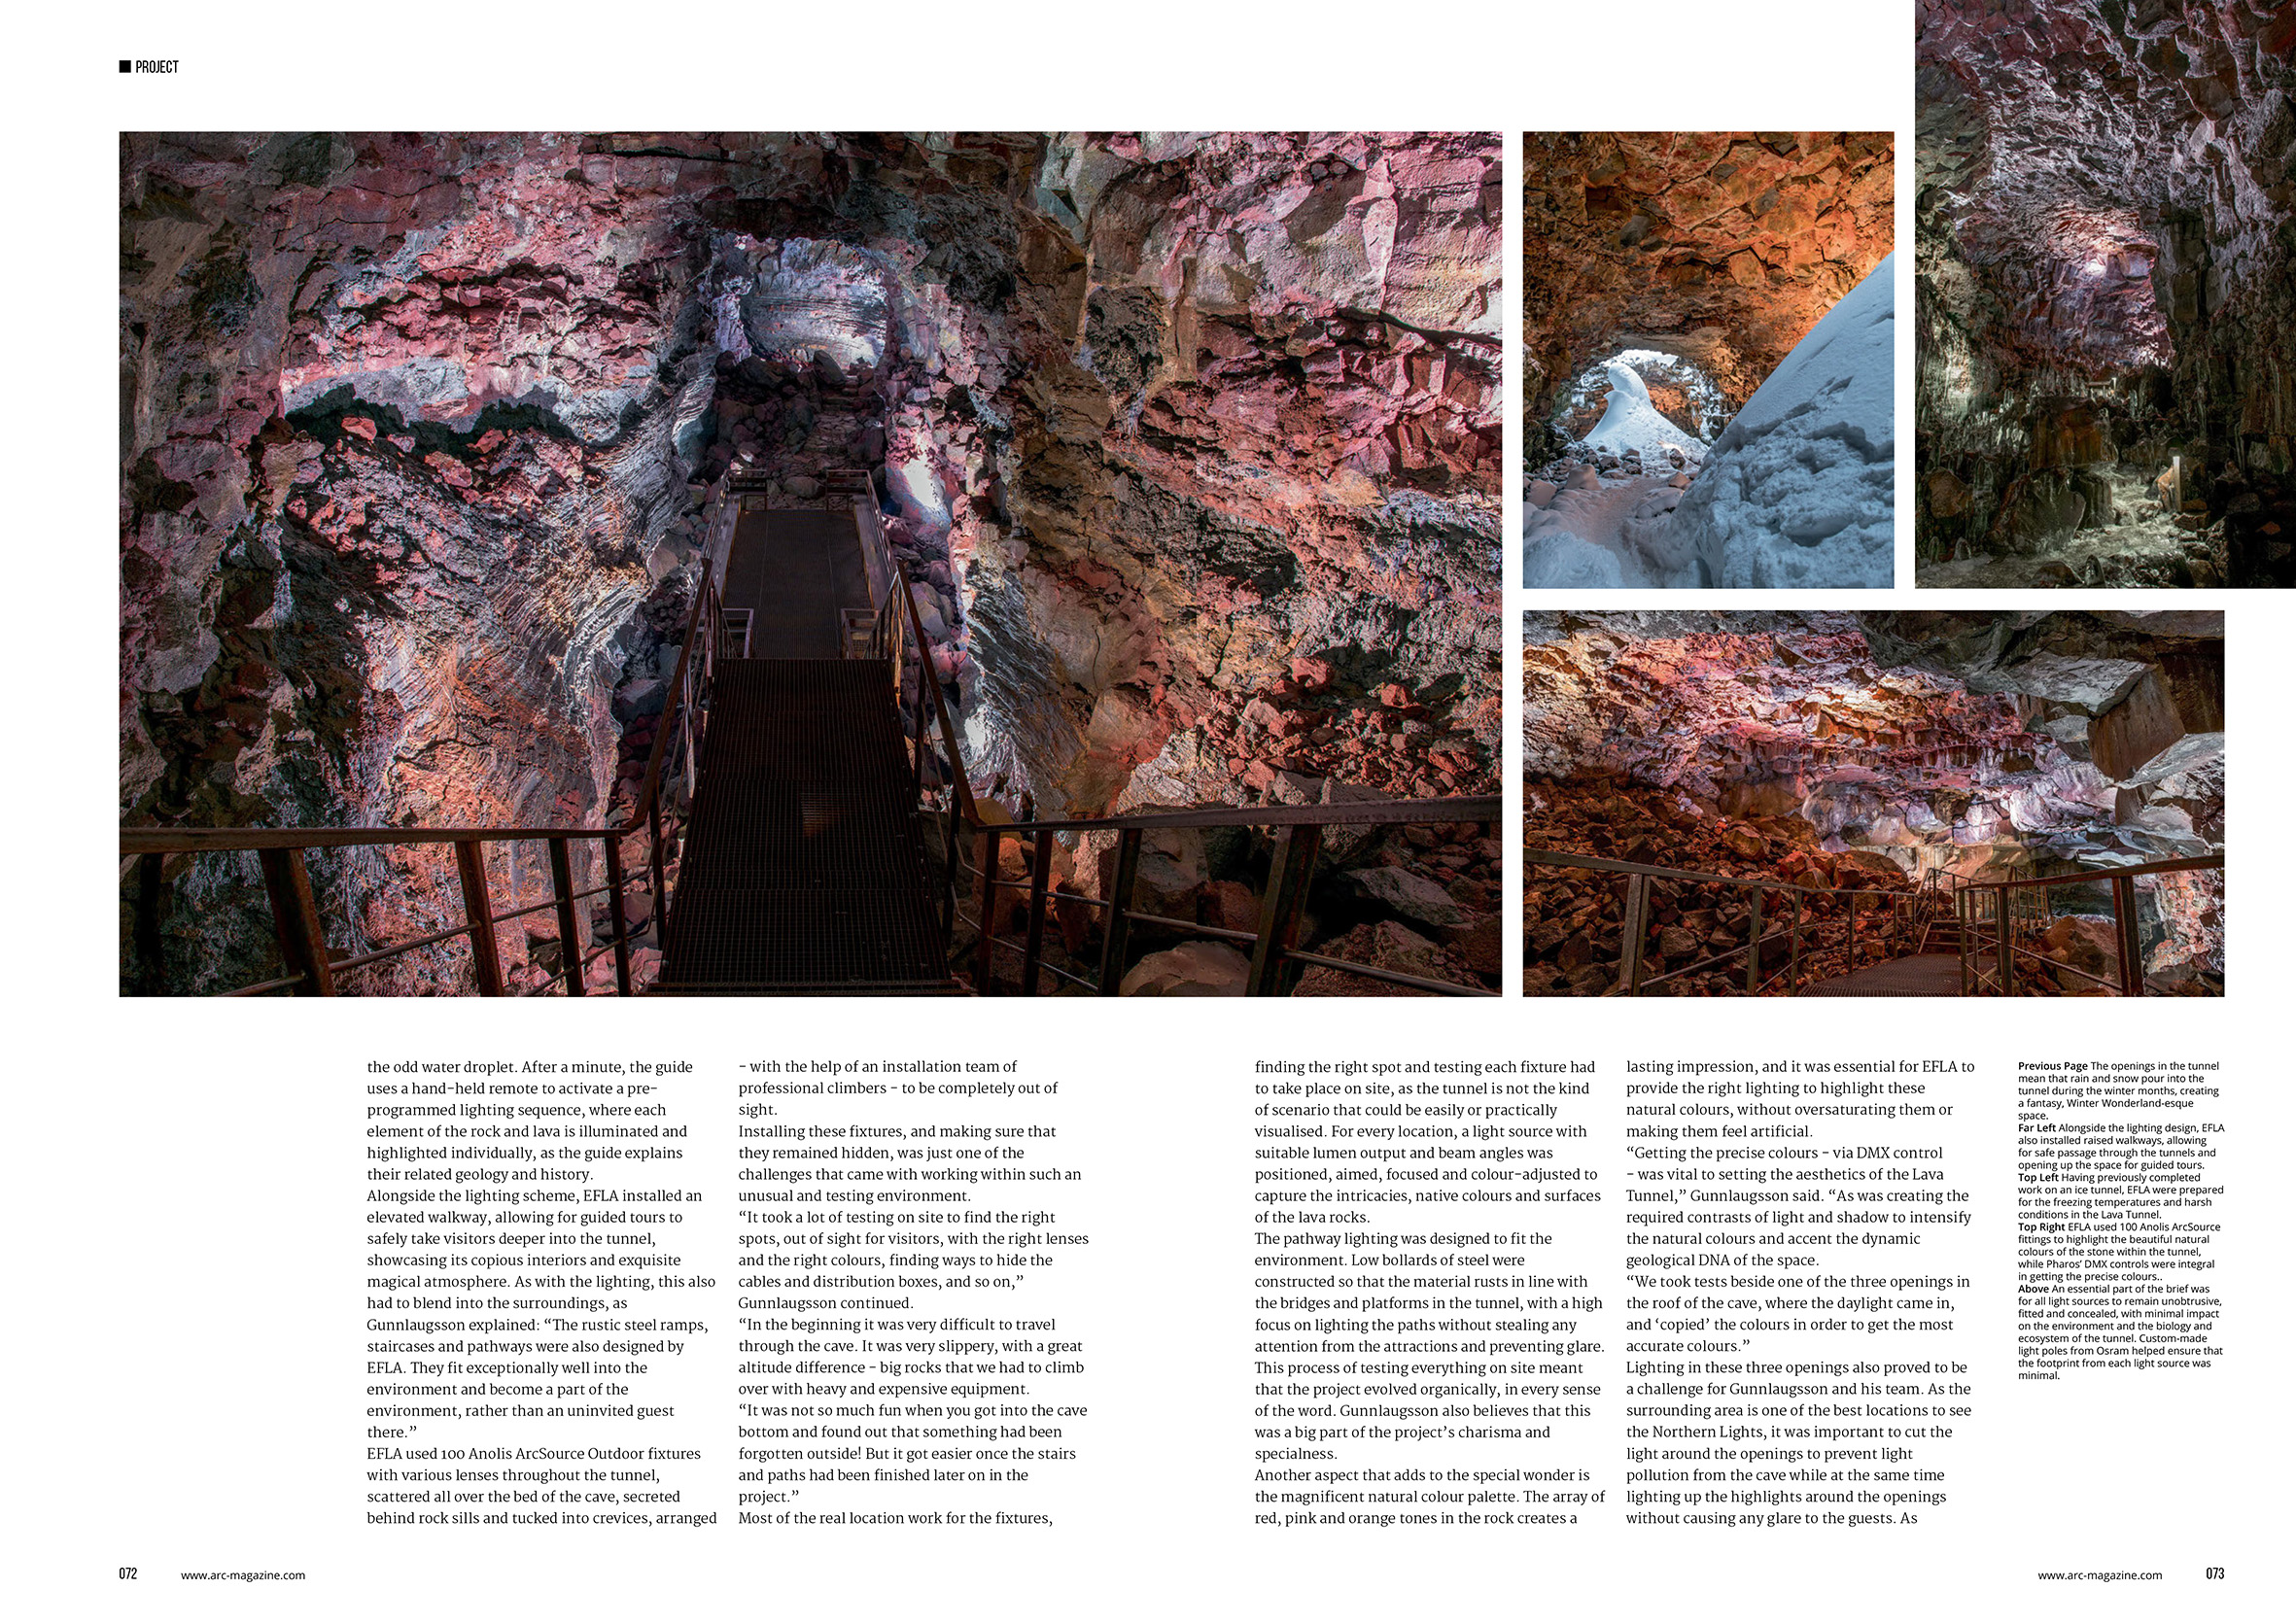 arc magazine_107_Lava Tunnel article_pp72-73w.jpg